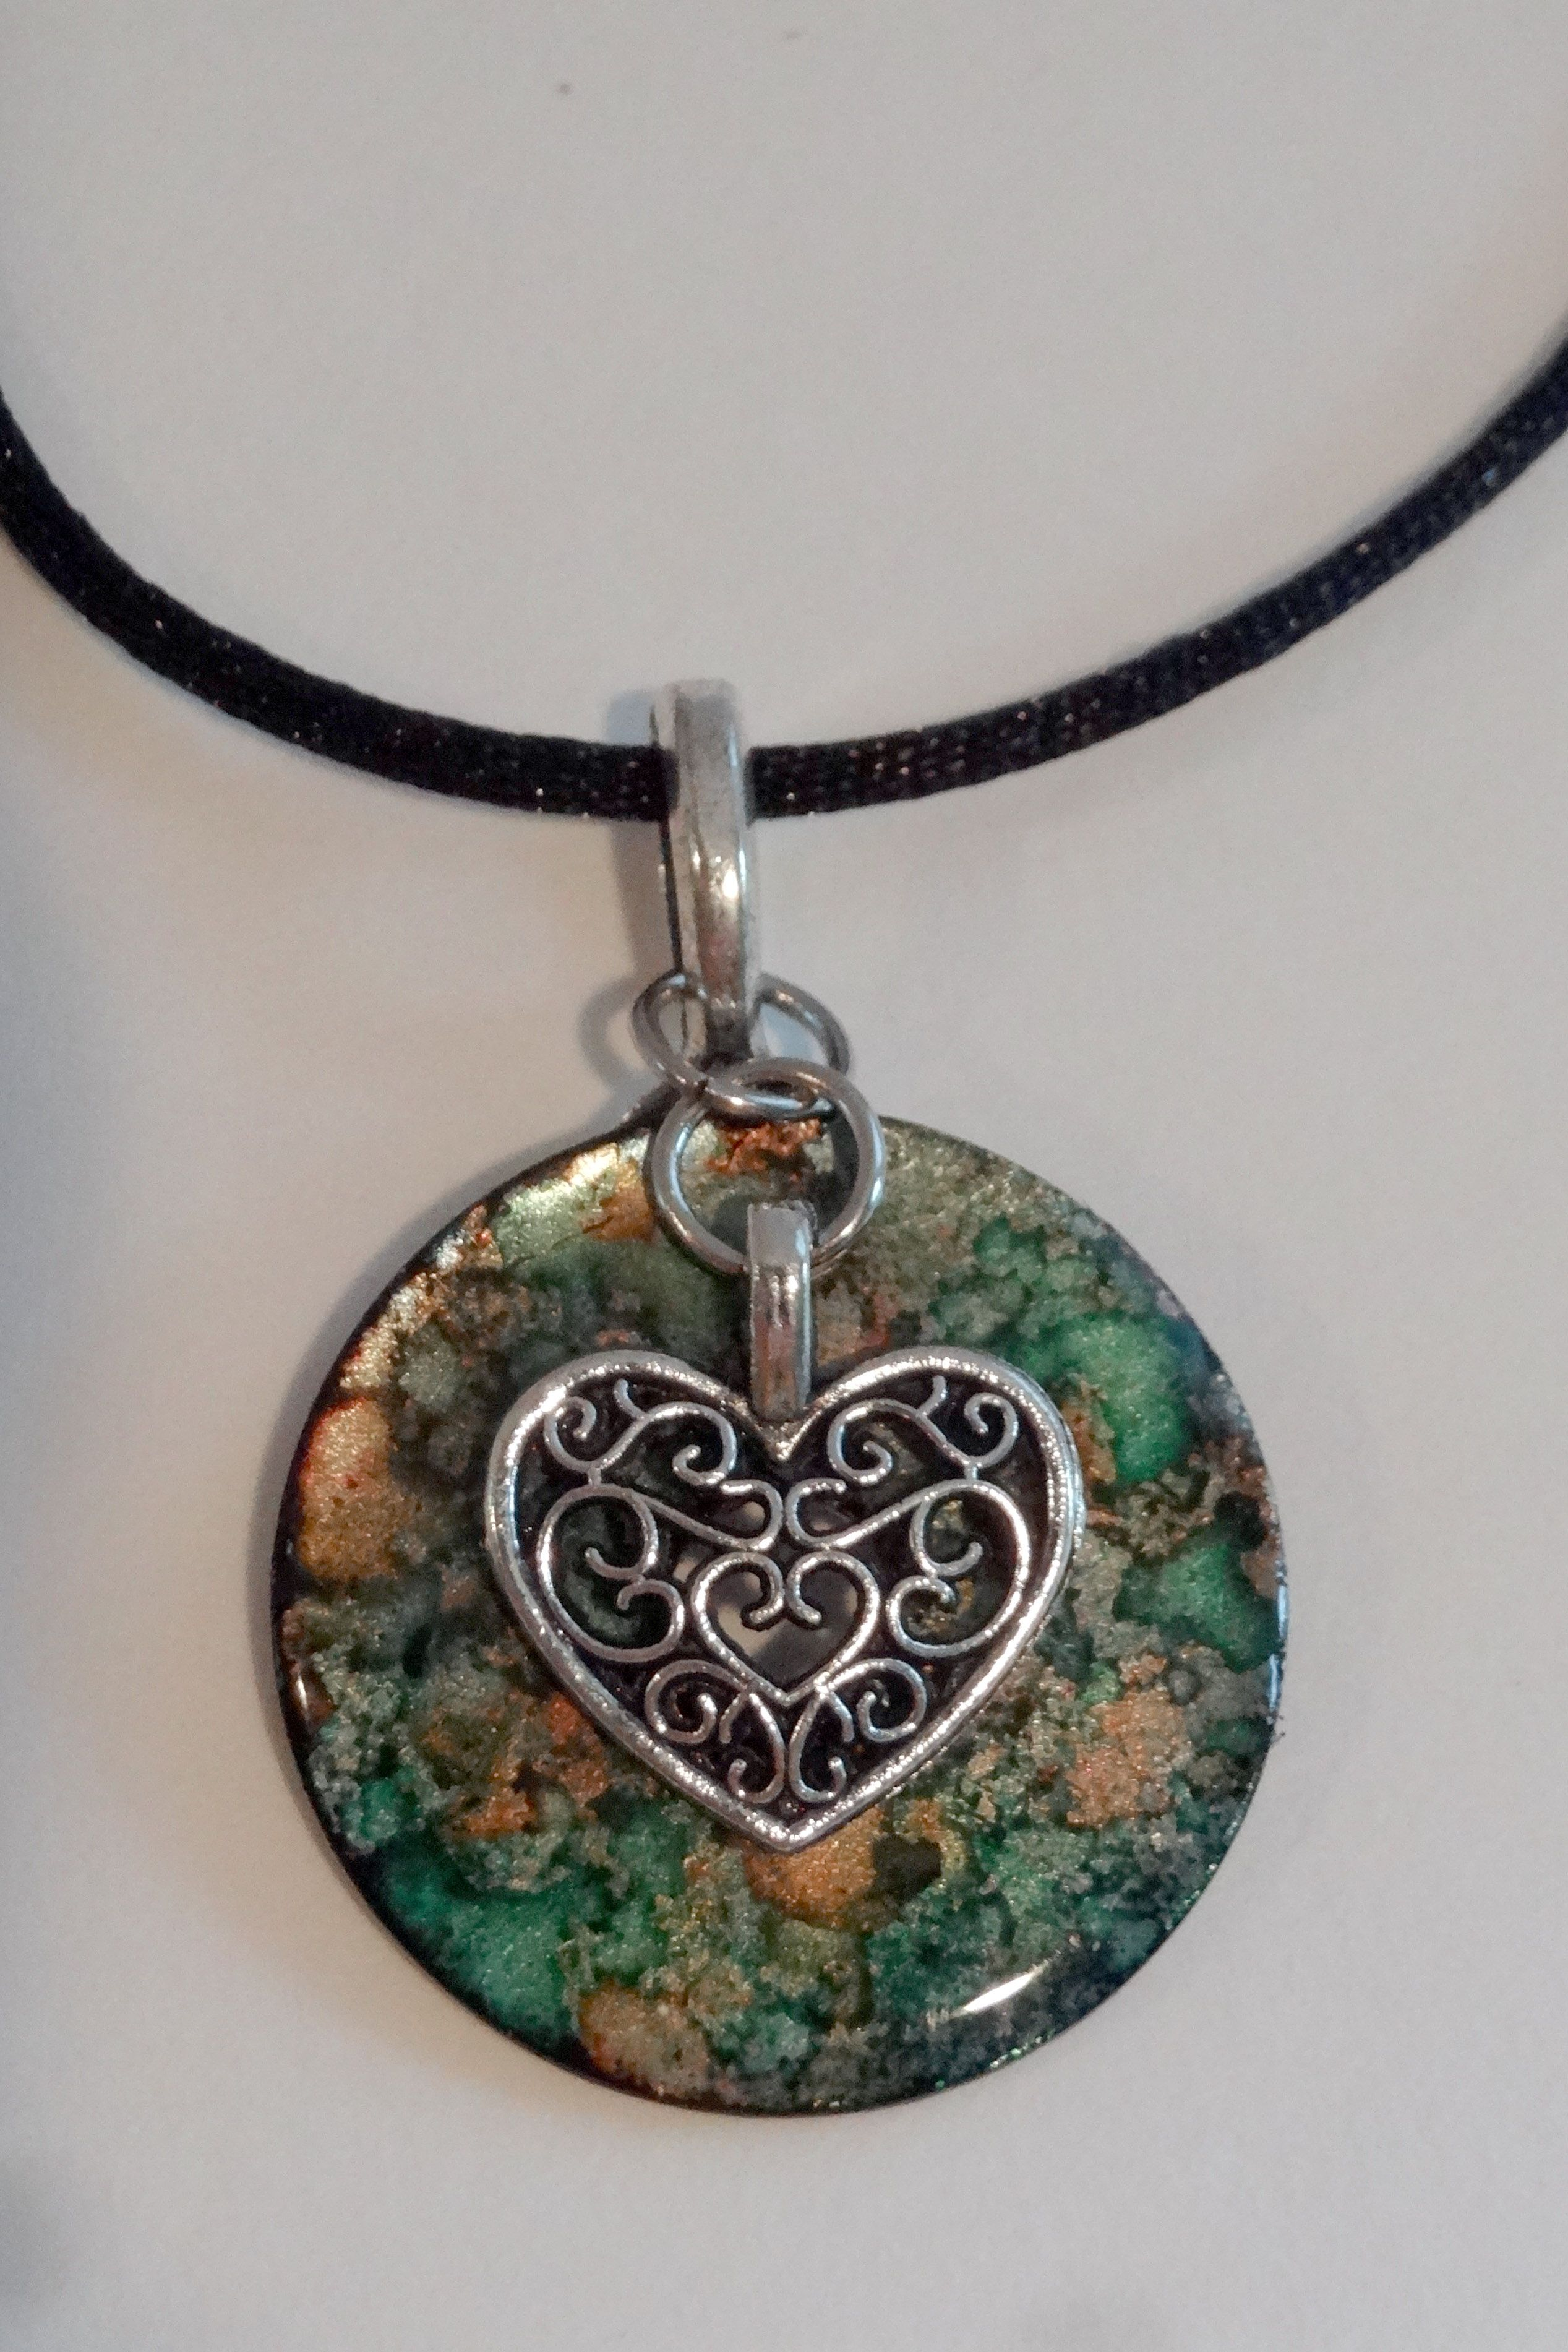 Alcohol ink washer pendant with filigree heart charm created by c alcohol ink washer pendant with filigree heart charm created by cryan aloadofball Choice Image